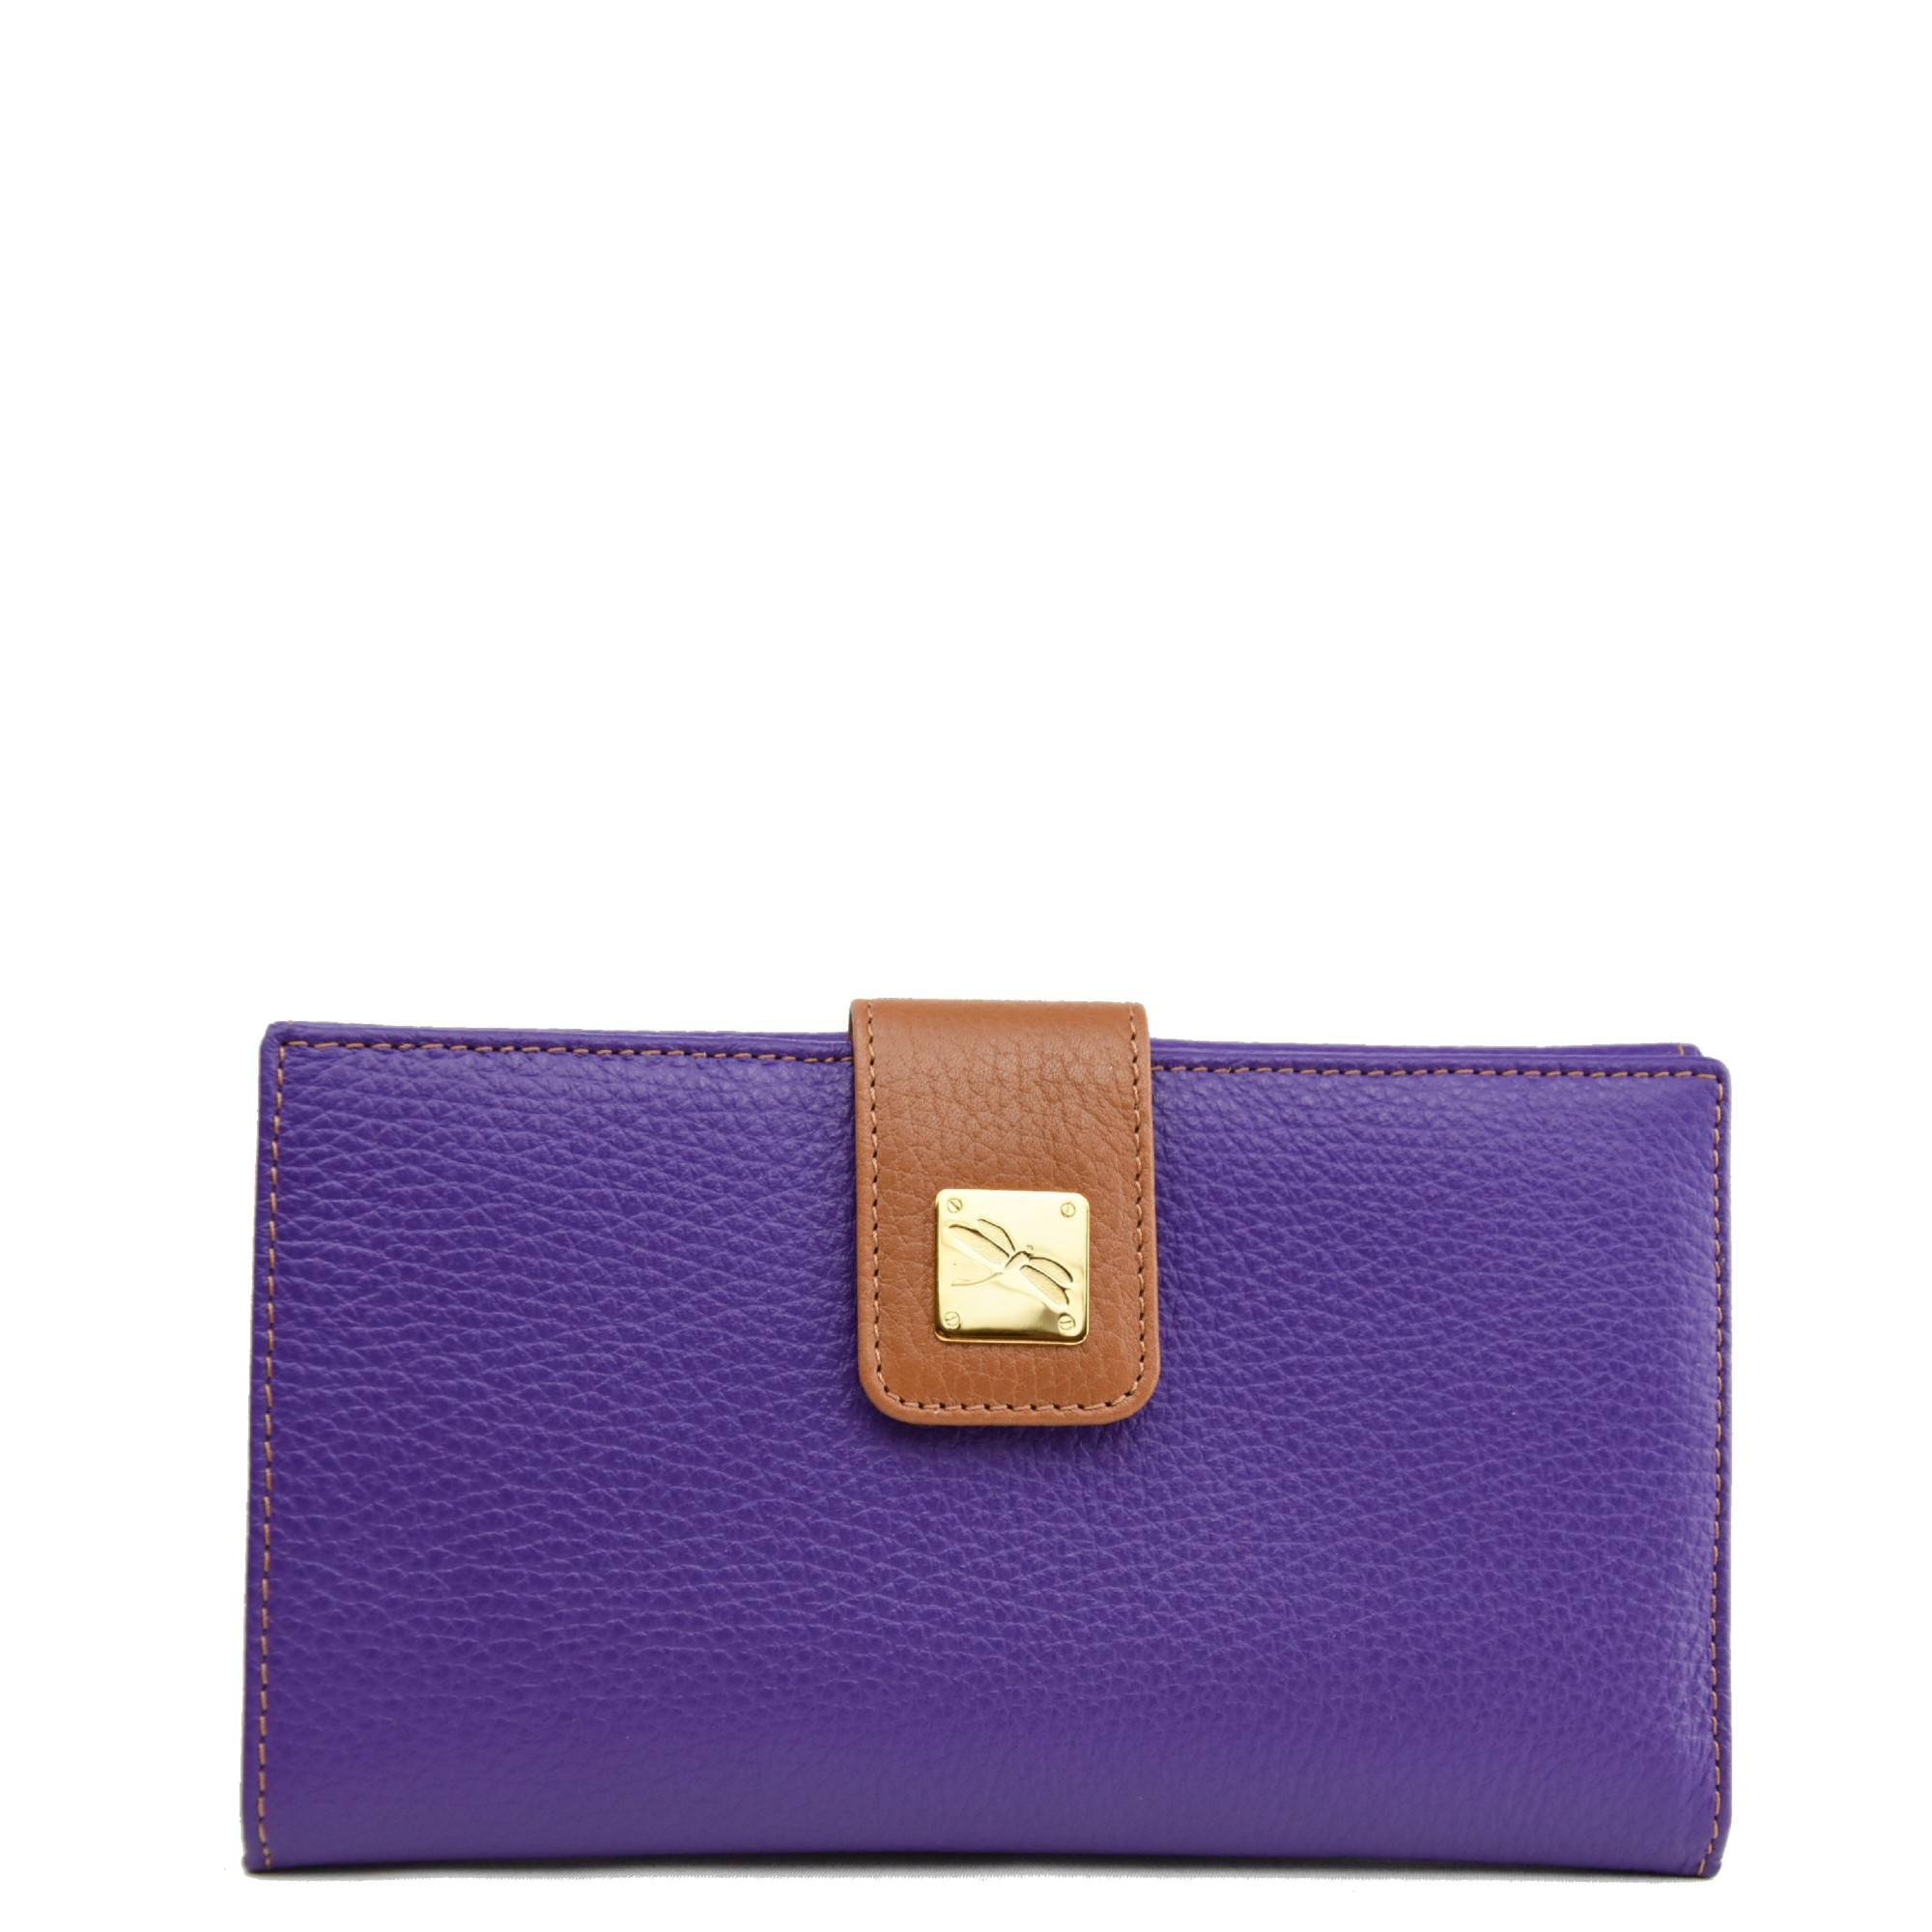 Leather Purple Wallet